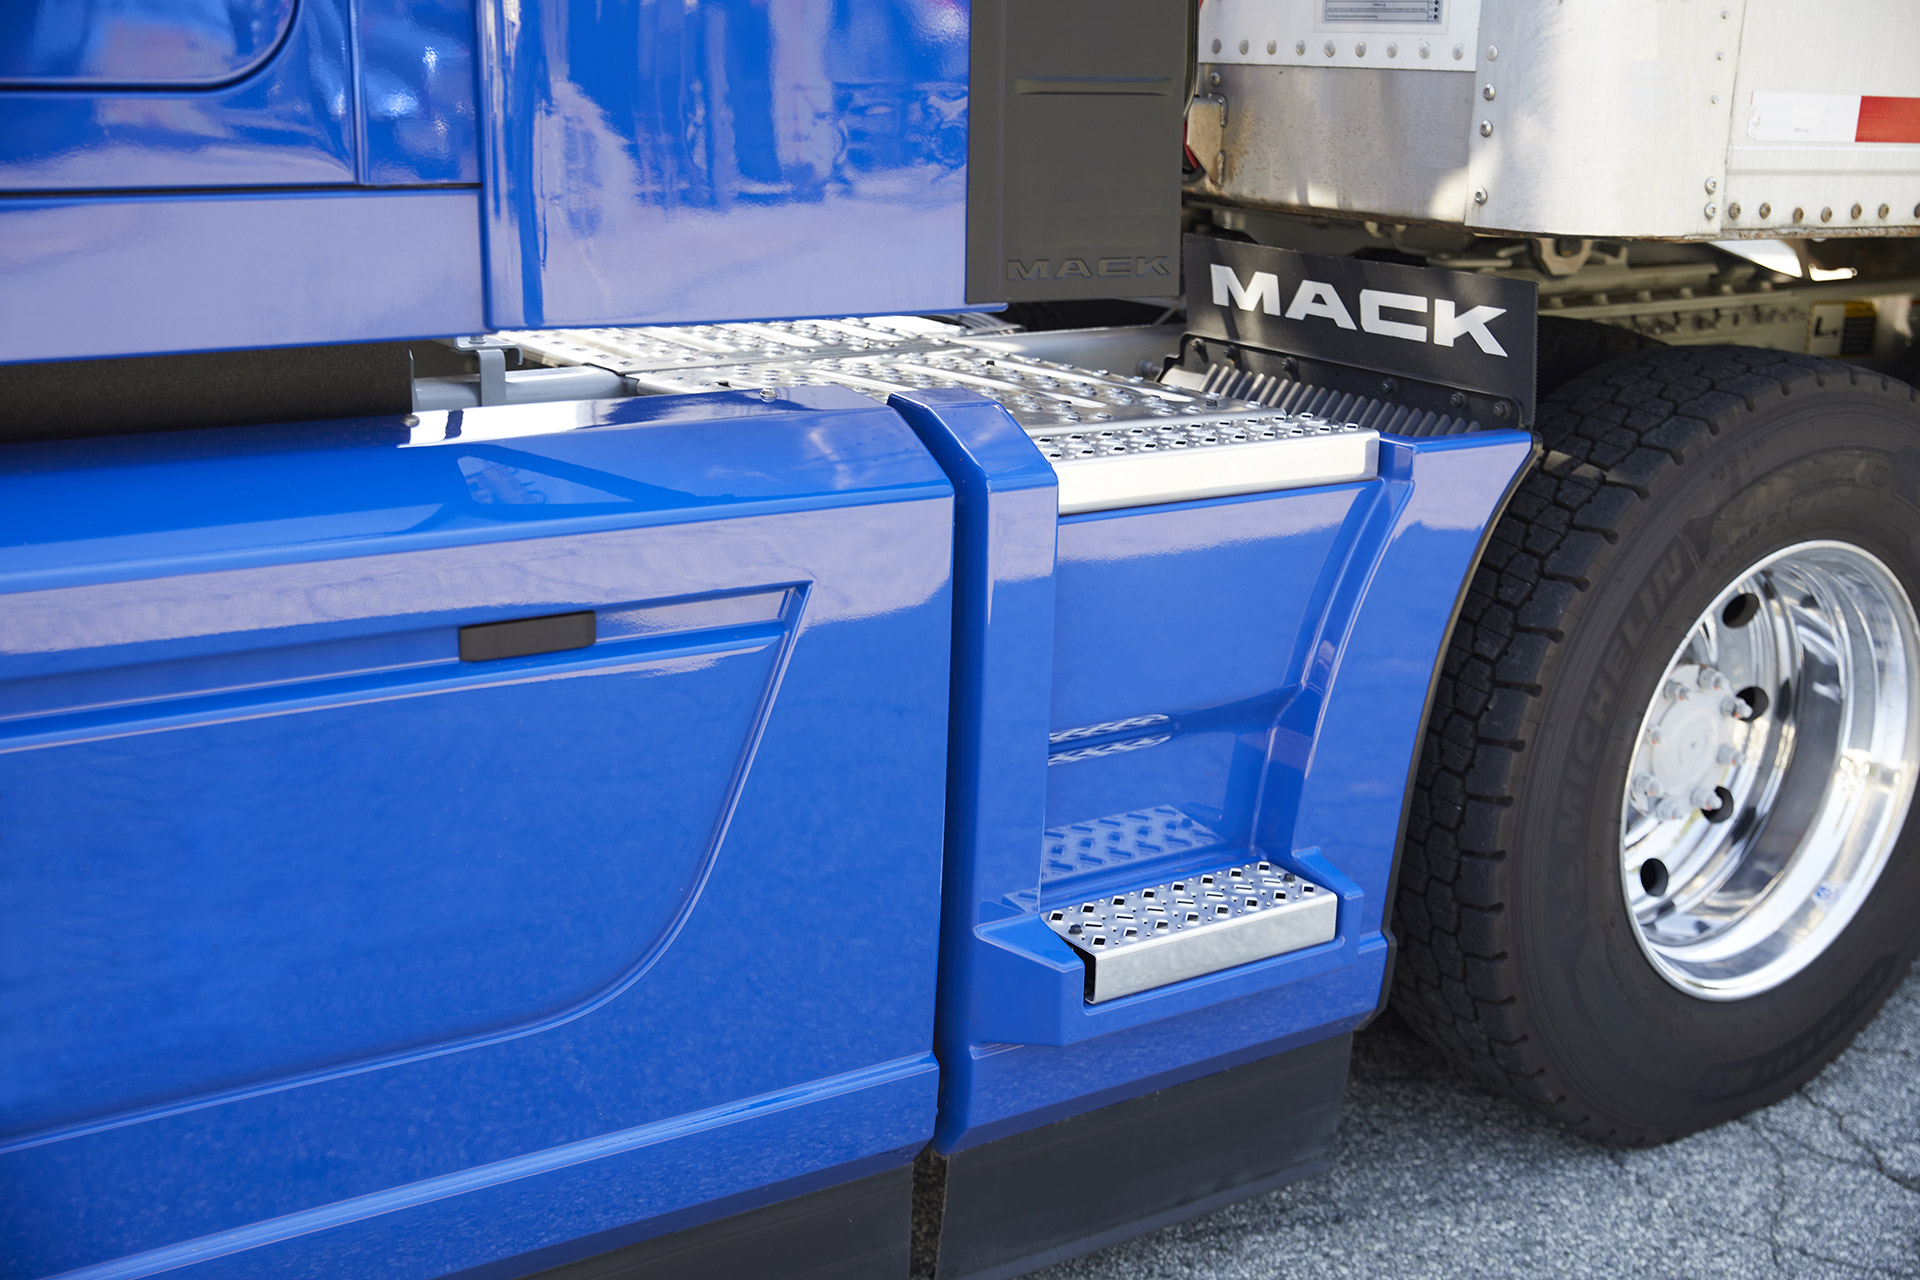 191007---mack-anthem-extended-chassis-fairings-2